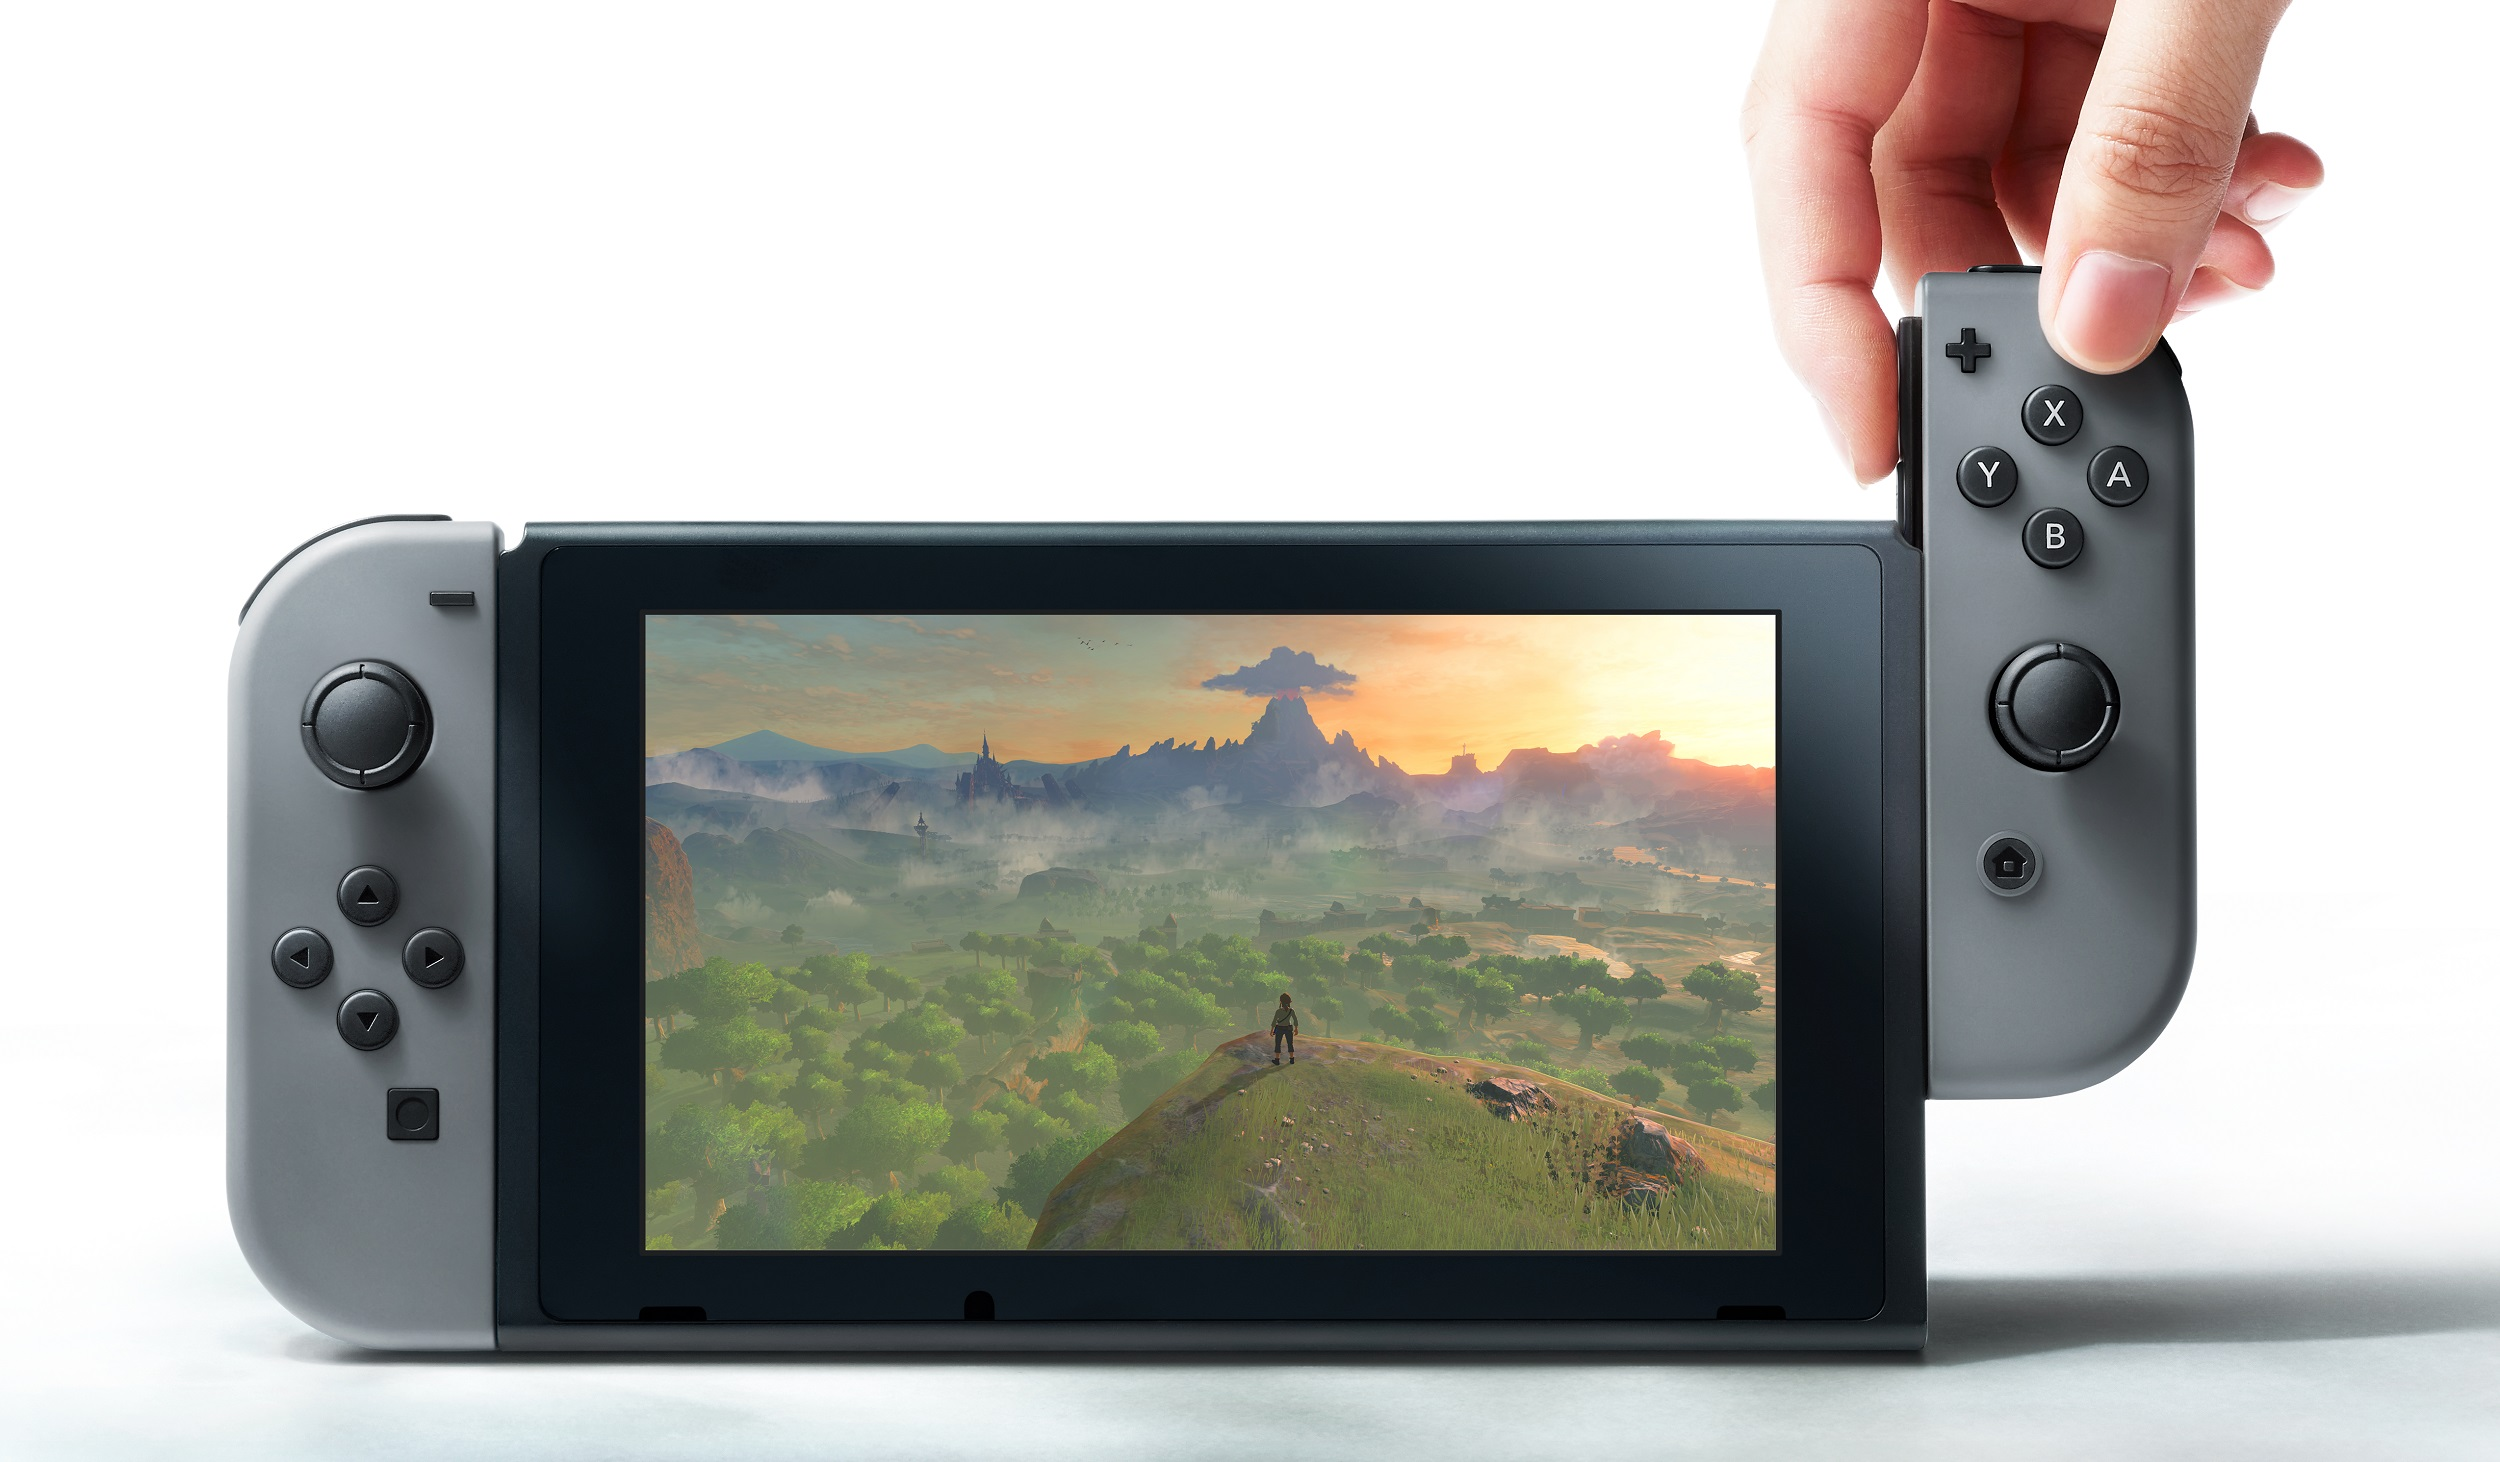 Similar To Best Buy, Gamestop Will Also Have A Midnight Launch Featuring  Limited Supplies Of The Nintendo Switch Available For Walkin Customers